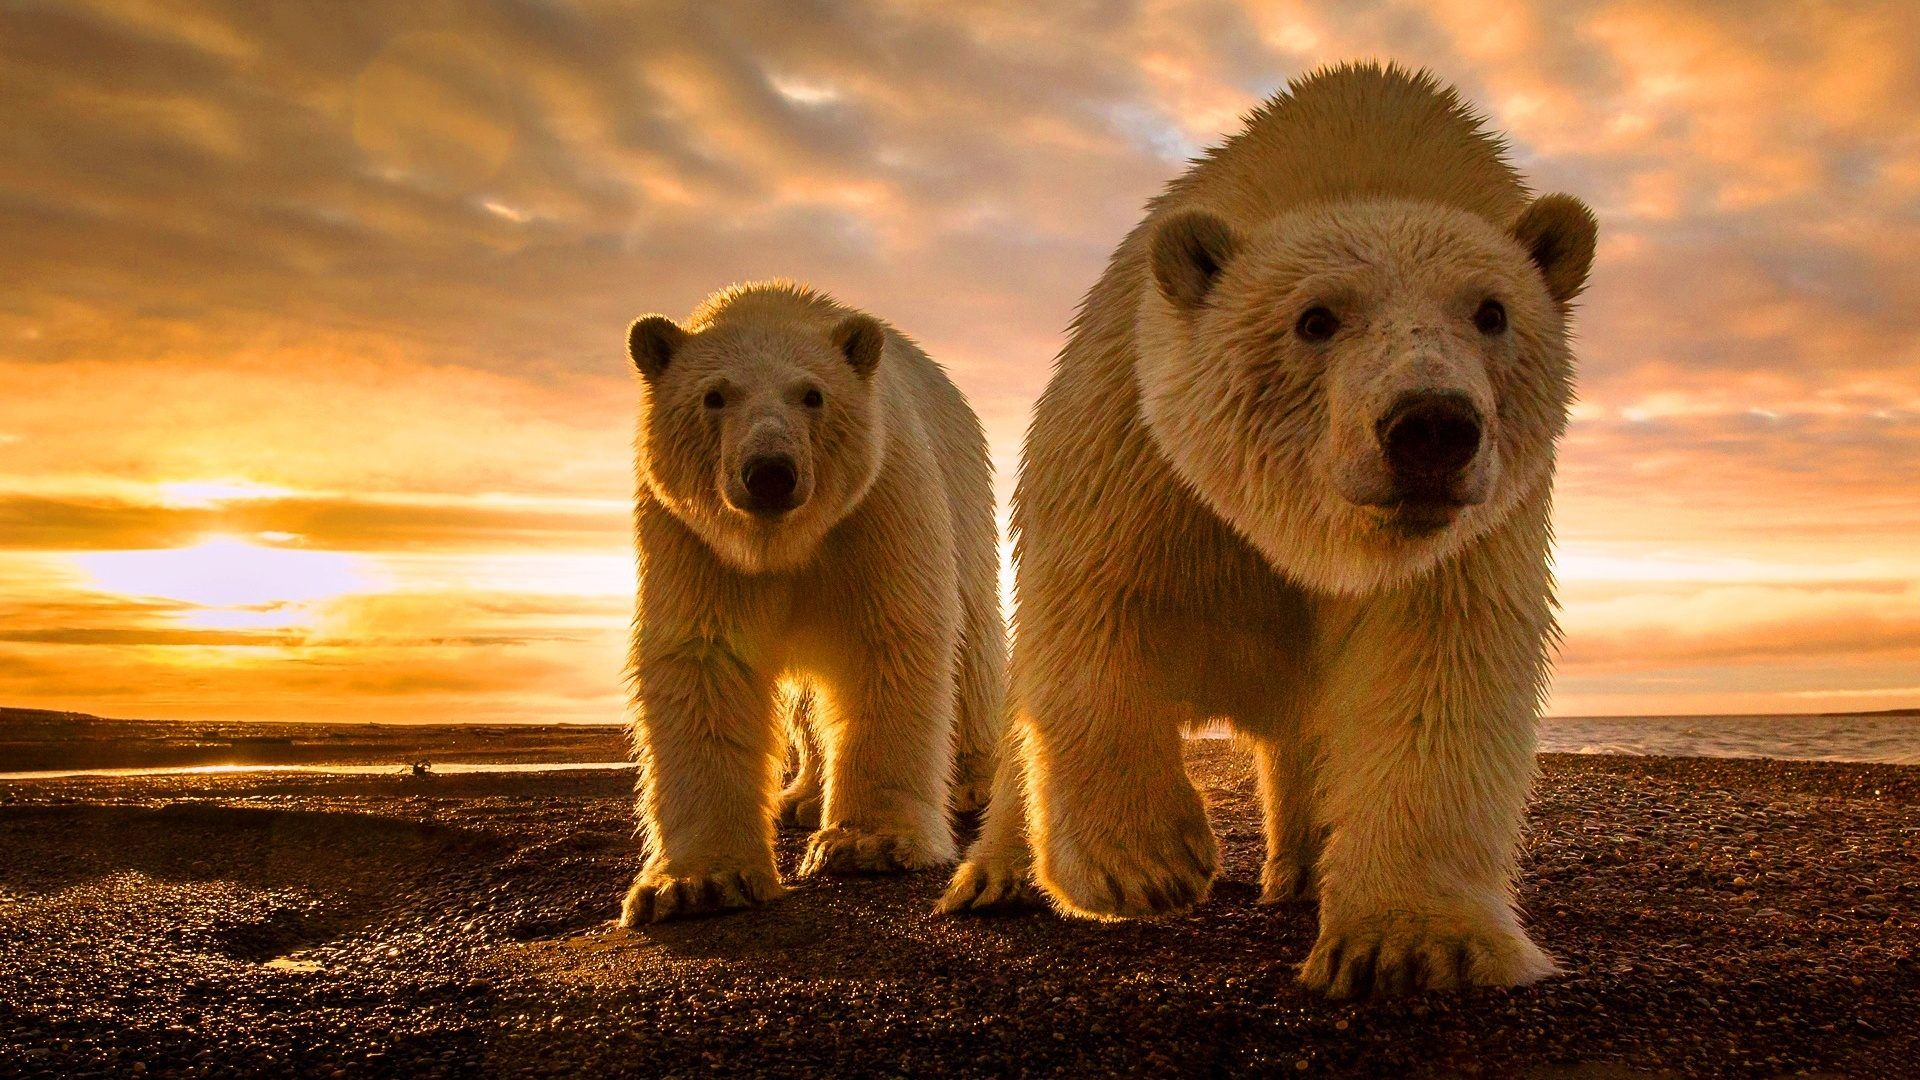 awesome pictures of grizzly bears pics pictures of grizzly bears